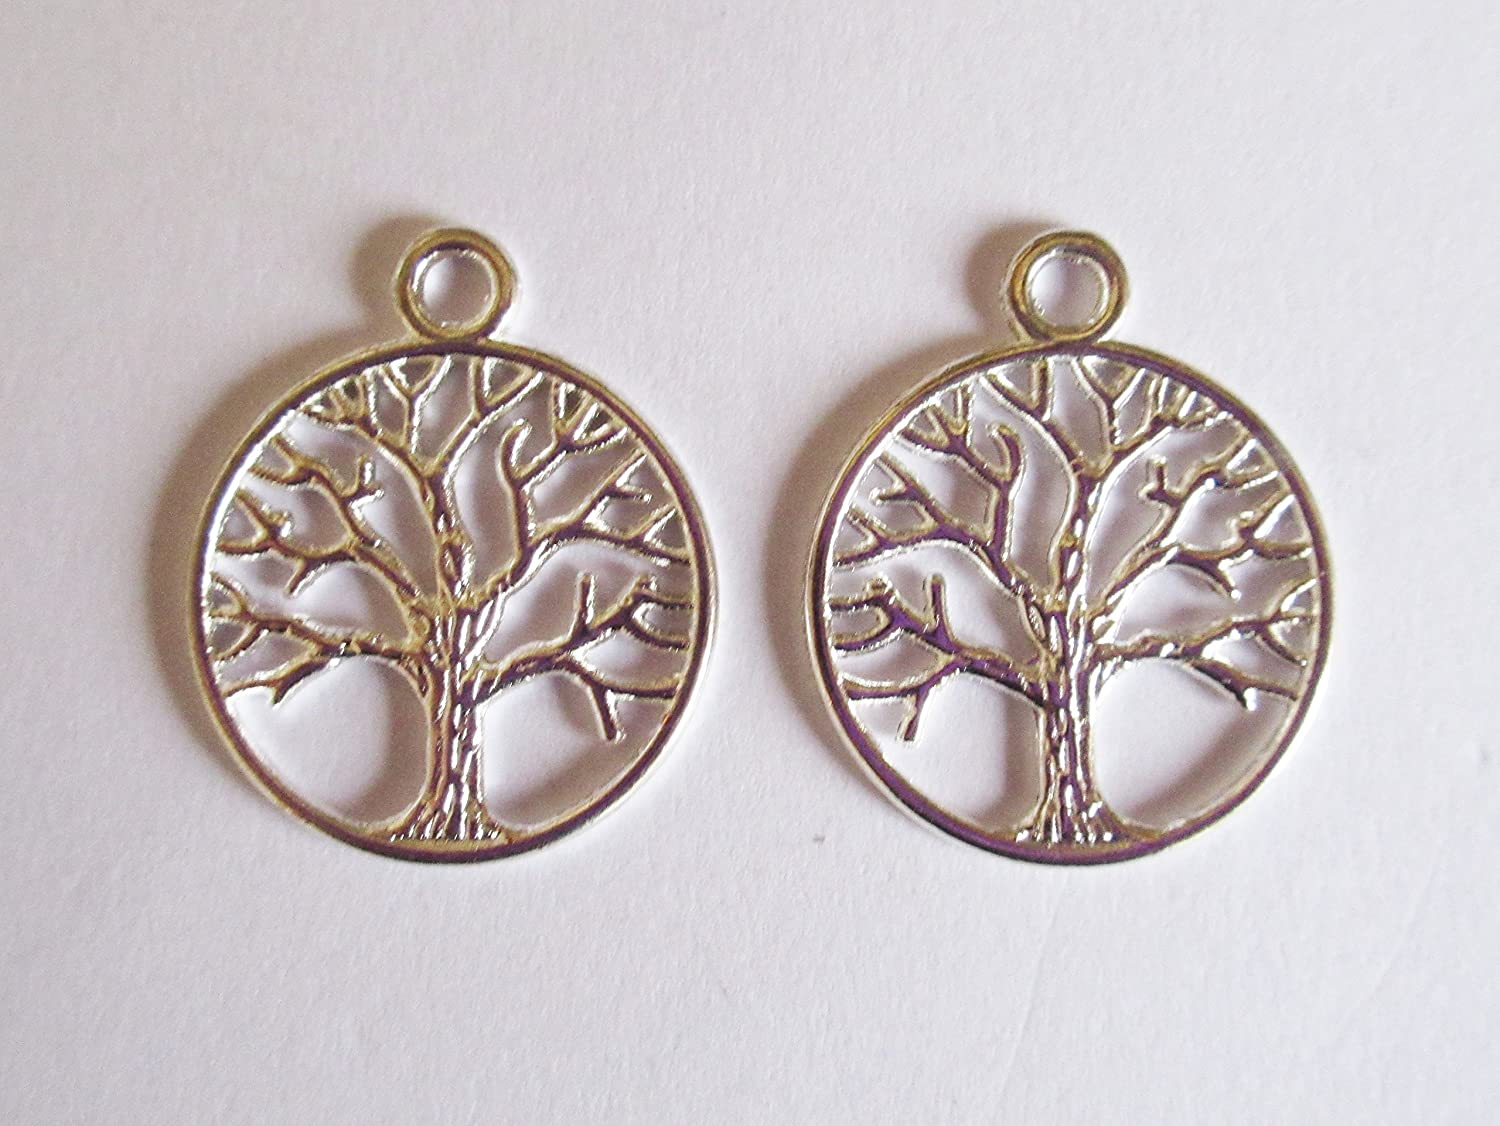 Julz Beads 10 Tree of Life Charms Pendants Antique Silver Tone 26mm x 23mm P00171H